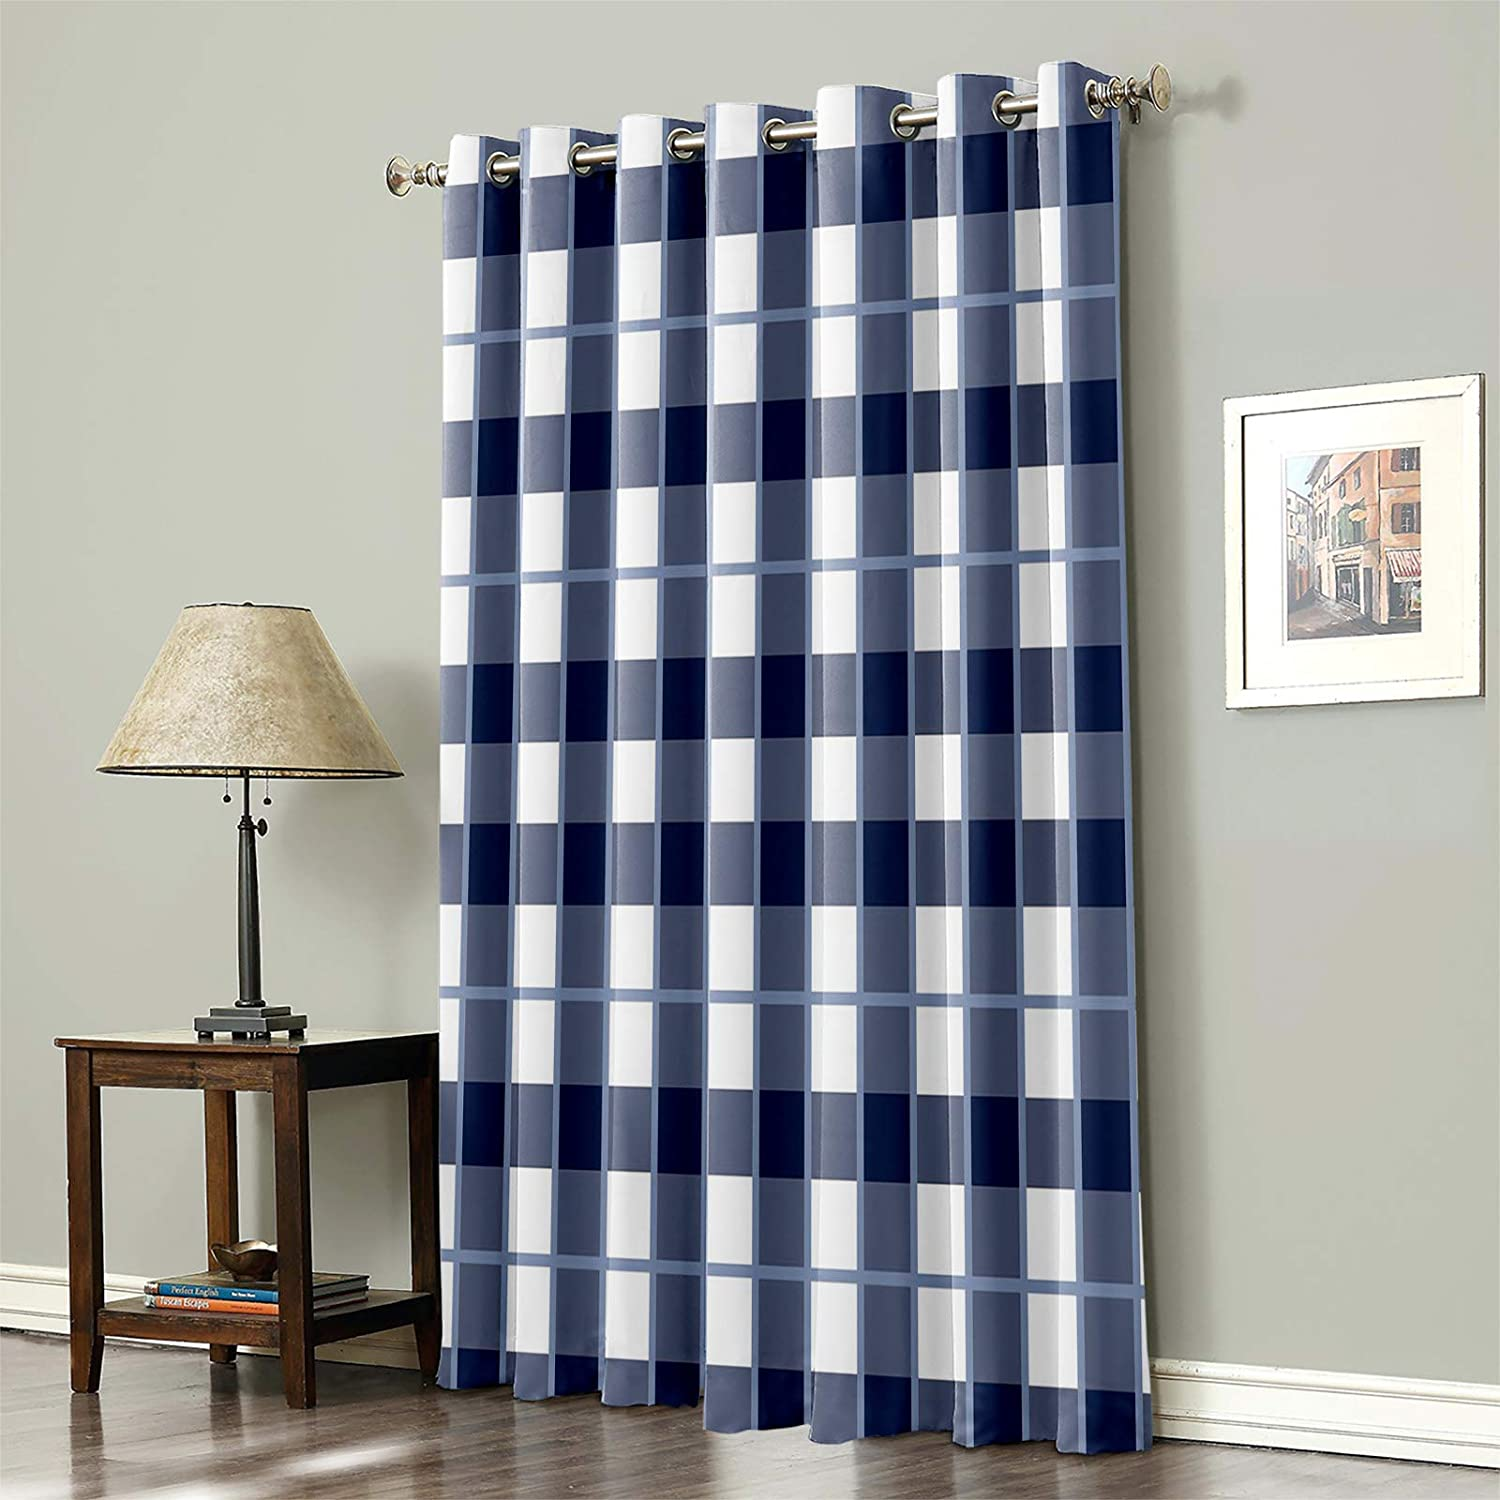 Blackout Curtain for Bedroom Blue famous Choice Geometric White Lattice and P